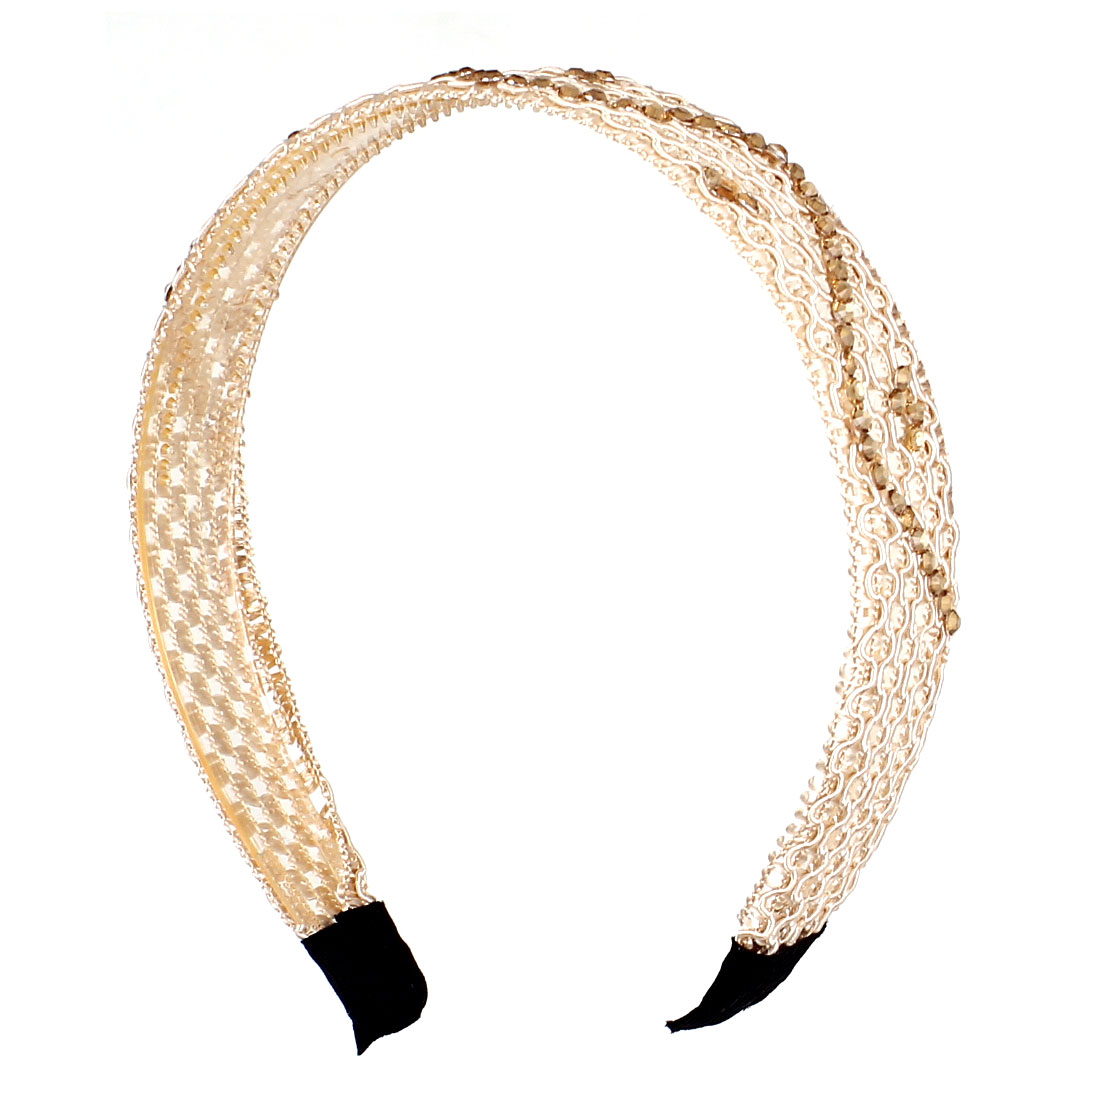 Pale Orange Plastic Rhinestone Inlaid Knitted String Hair Hoop Headband Hairband for Lady